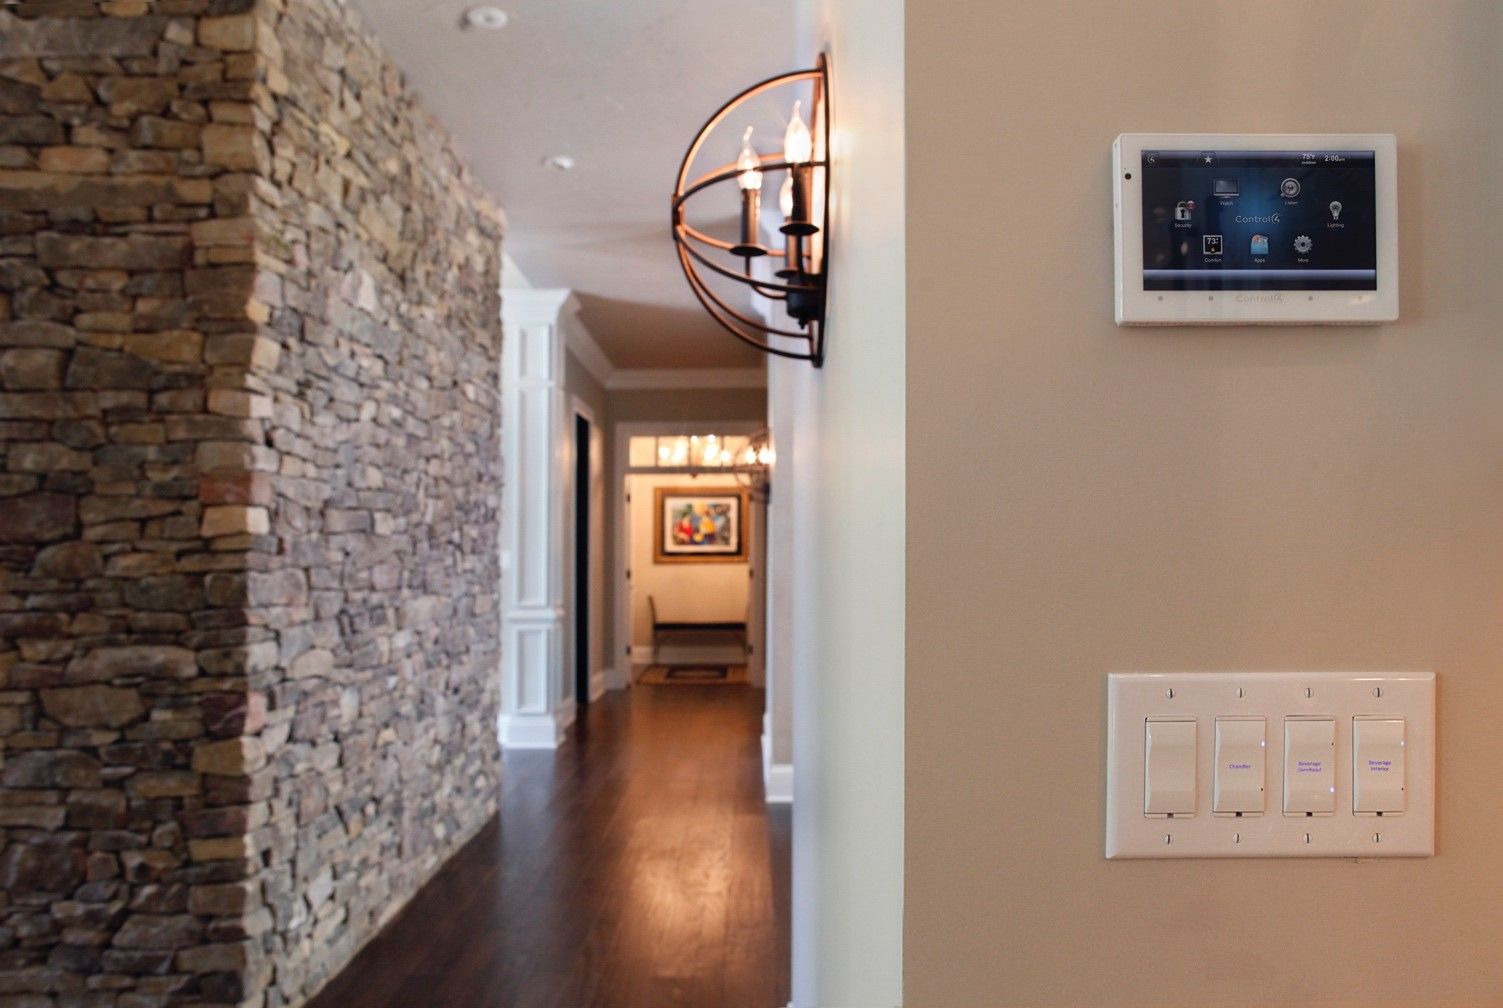 Interested in Simplifying Your Home? Control4 Home Automation is Here.